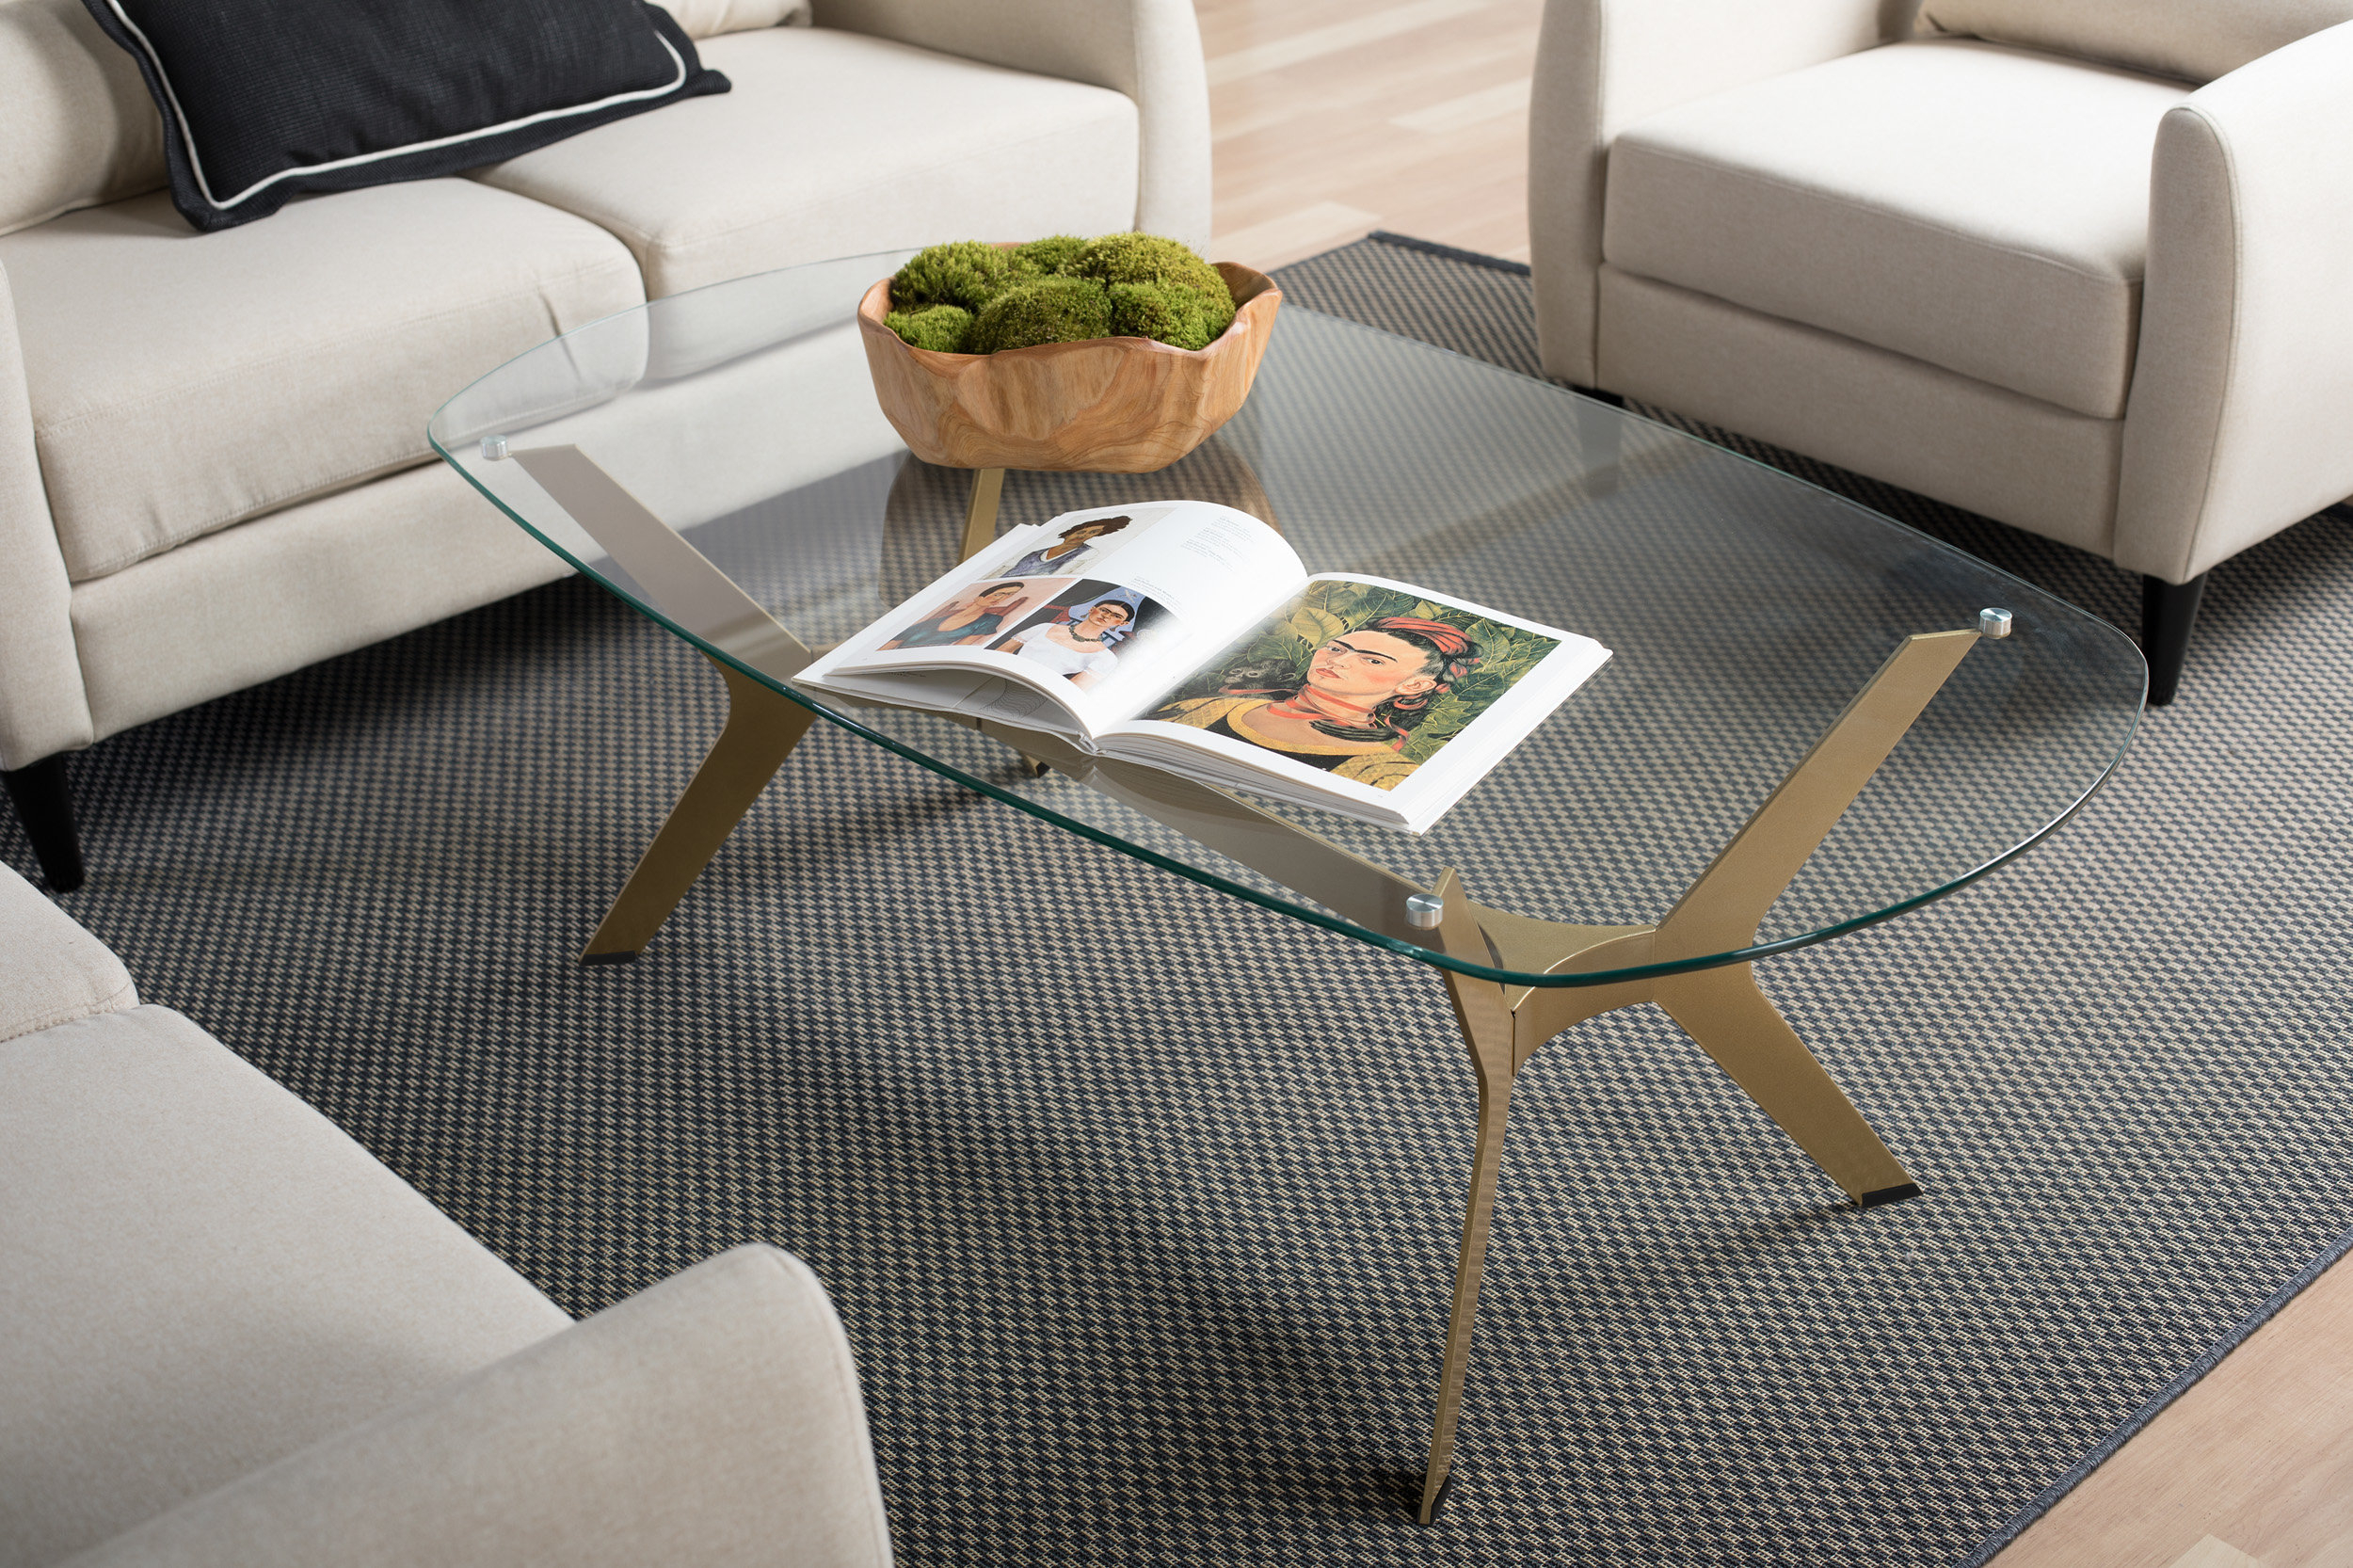 Studio Designs Home Archtech Modern Coffee Table Reviews Wayfair within size 2500 X 1666